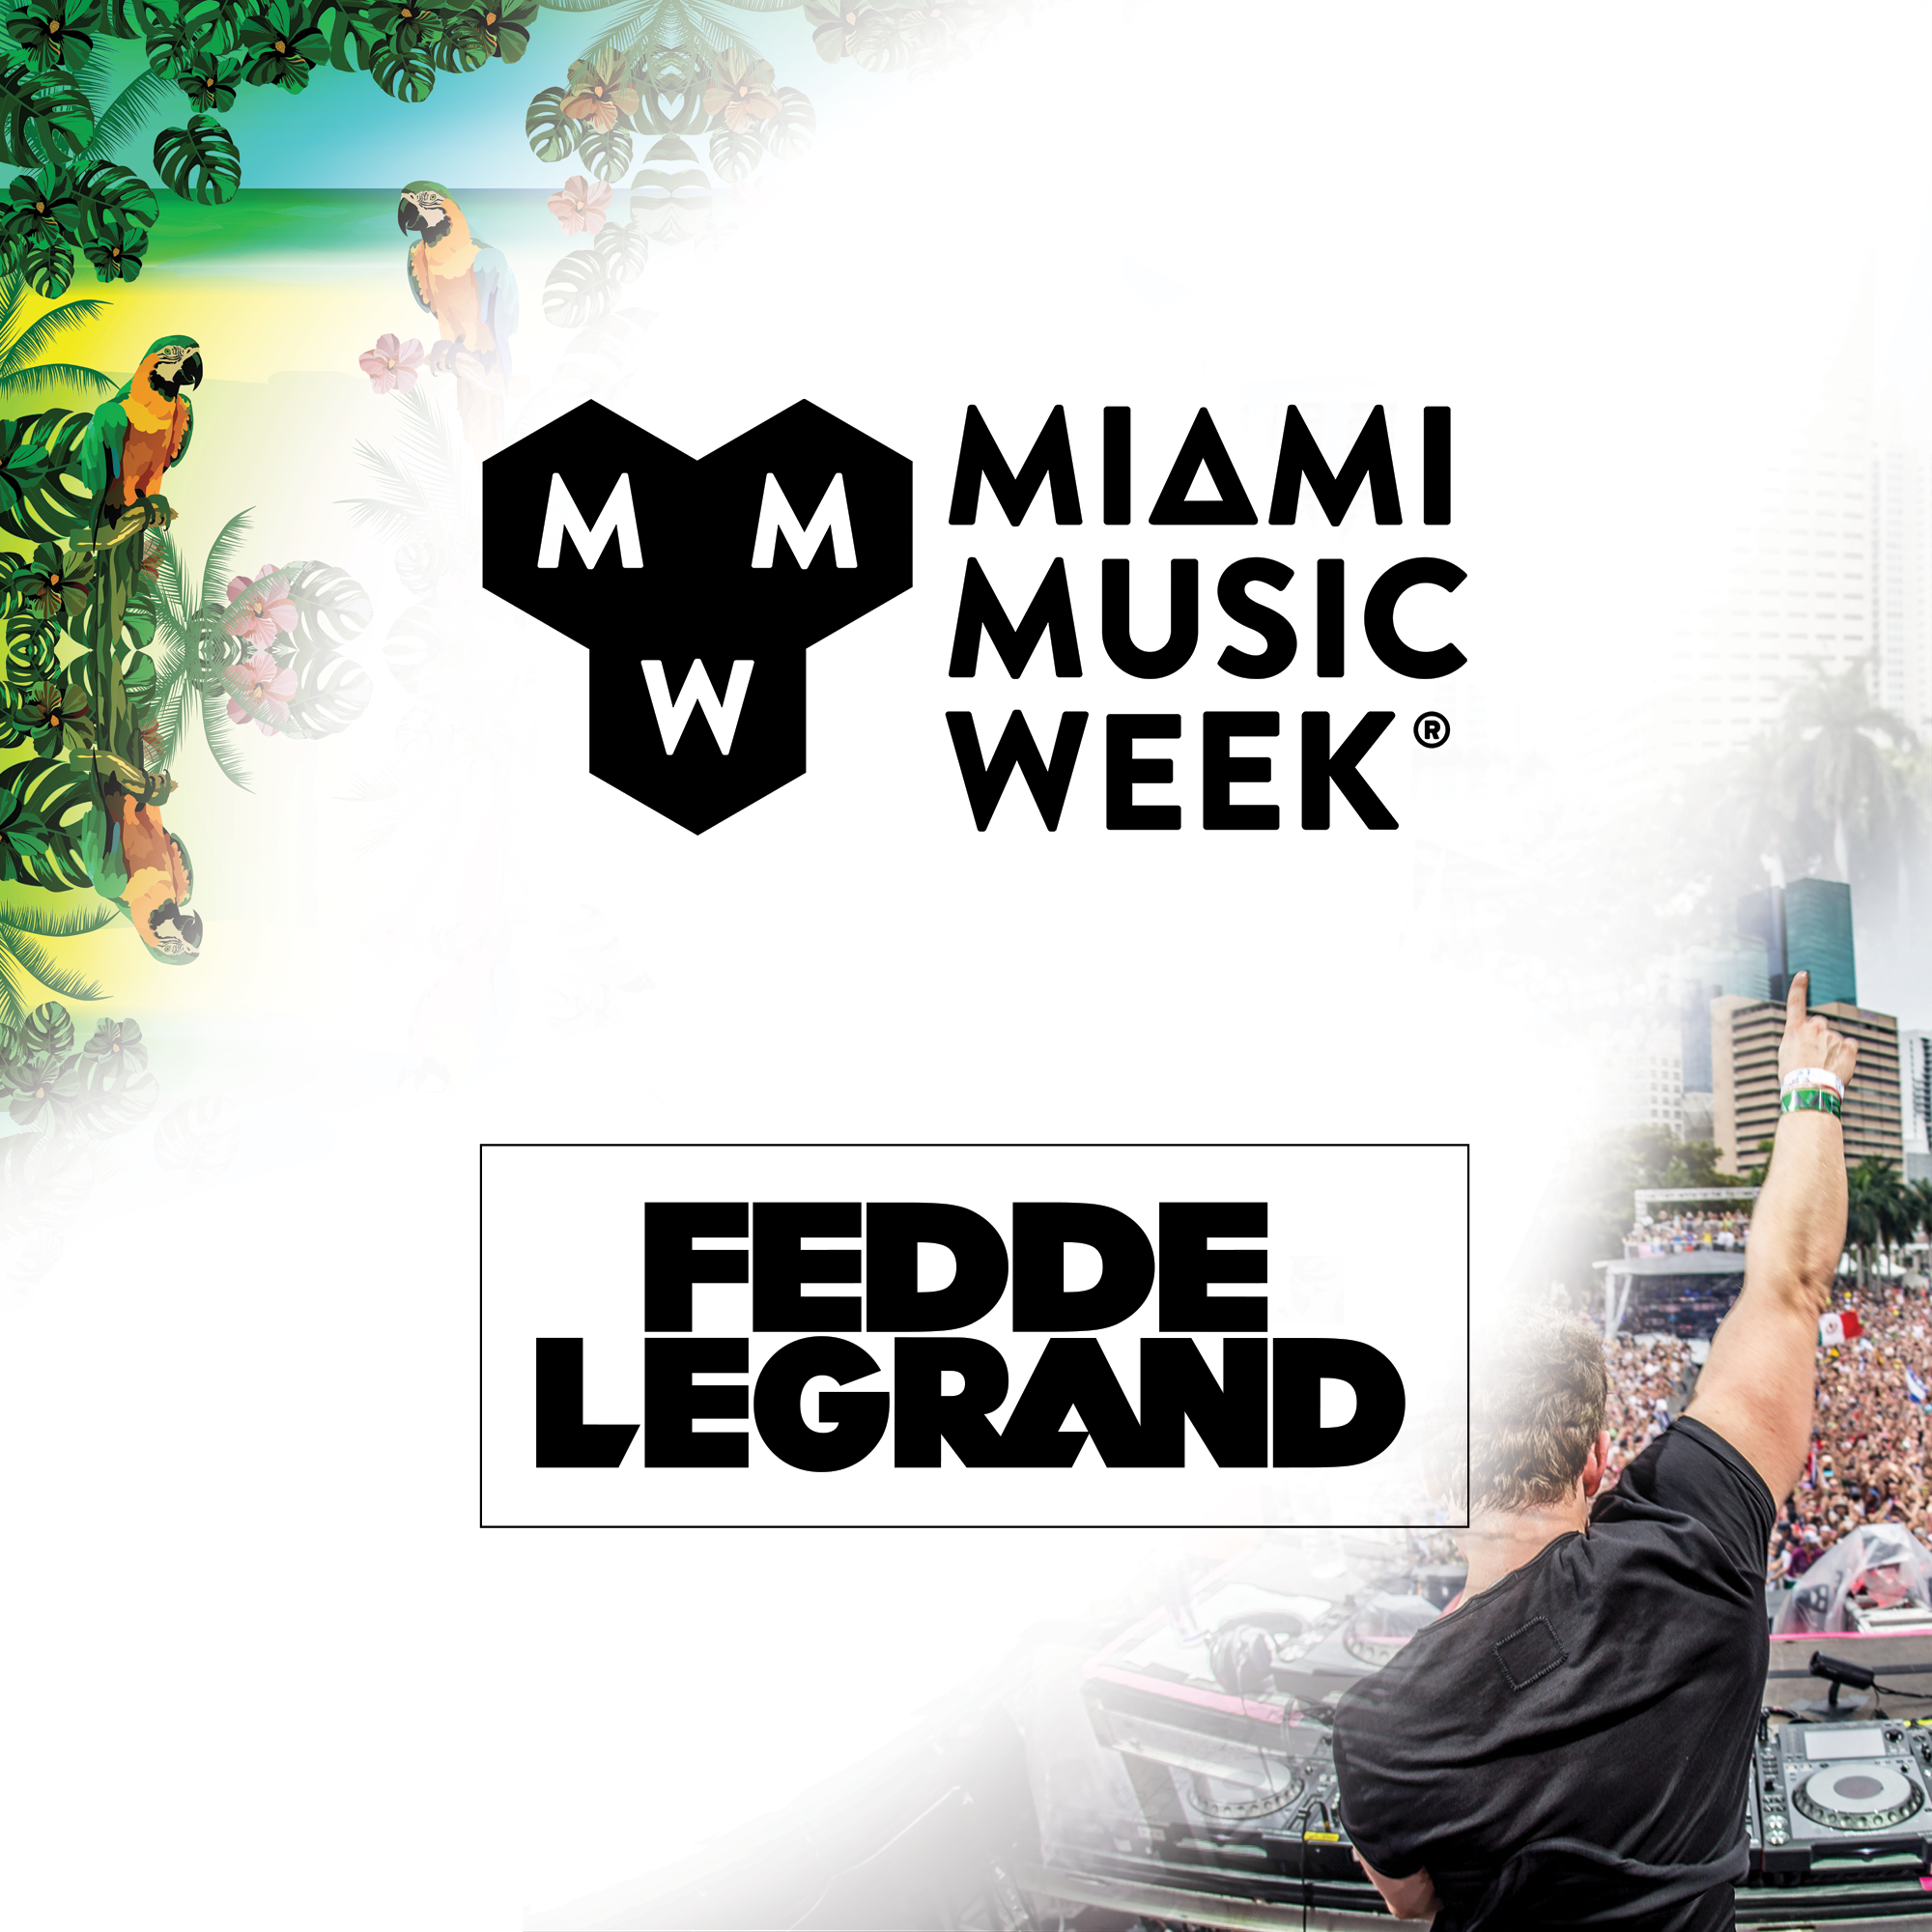 FEDDE LE GRAND TO BRING ON AN IMPRESSIVE MIAMI MUSIC WEEK